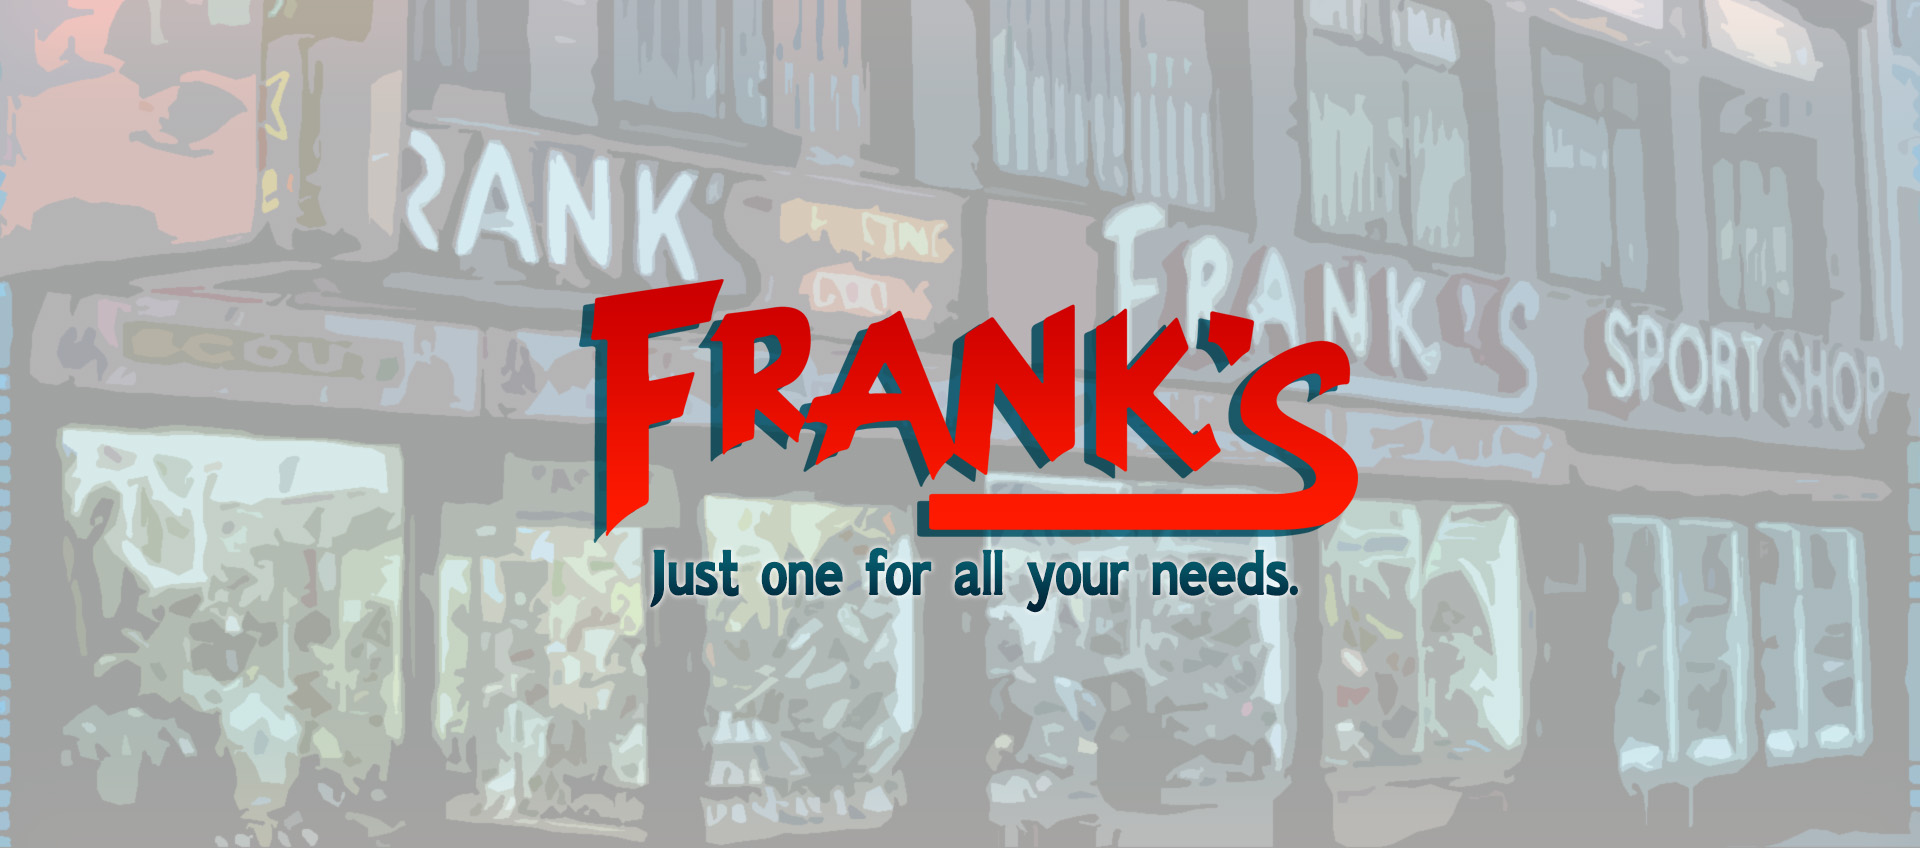 Welcome to Frank's Sport Shop image